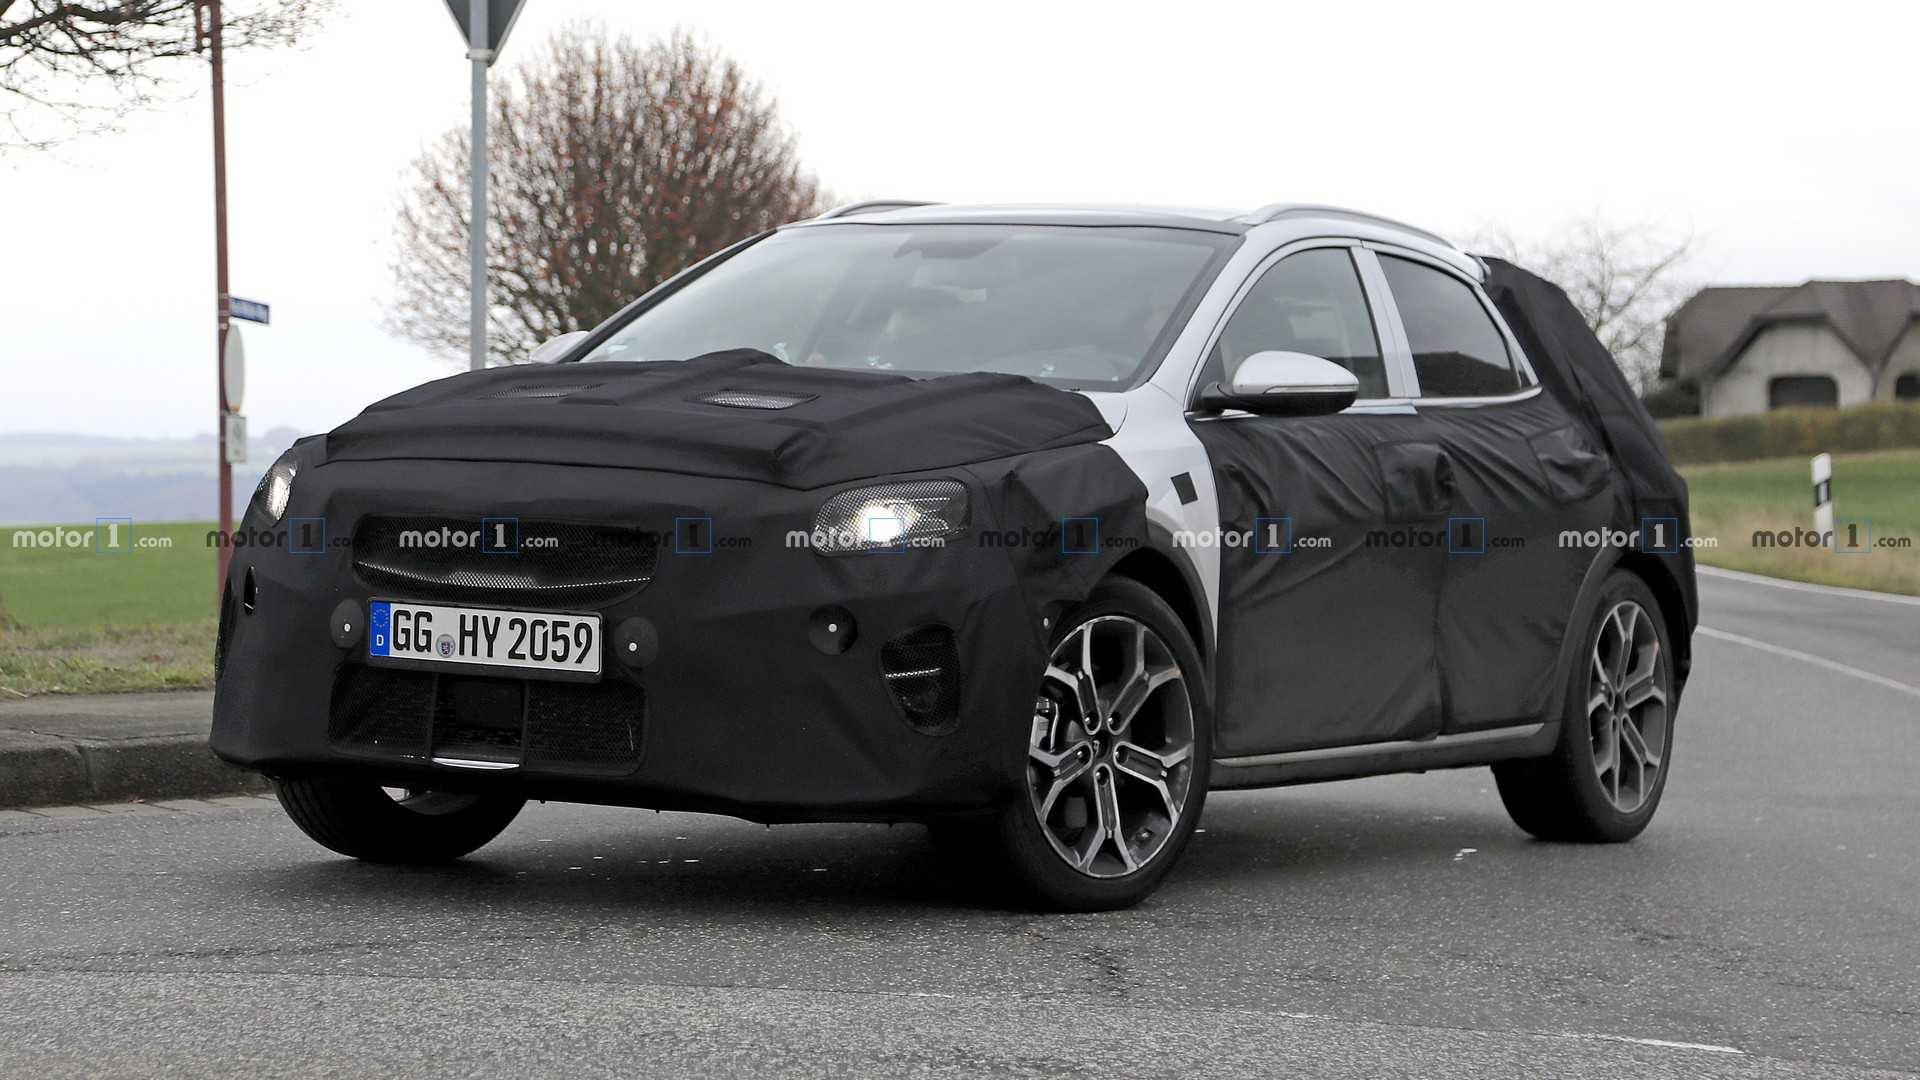 38 All New 2020 KIA SportageSpy Shots Images with 2020 KIA SportageSpy Shots